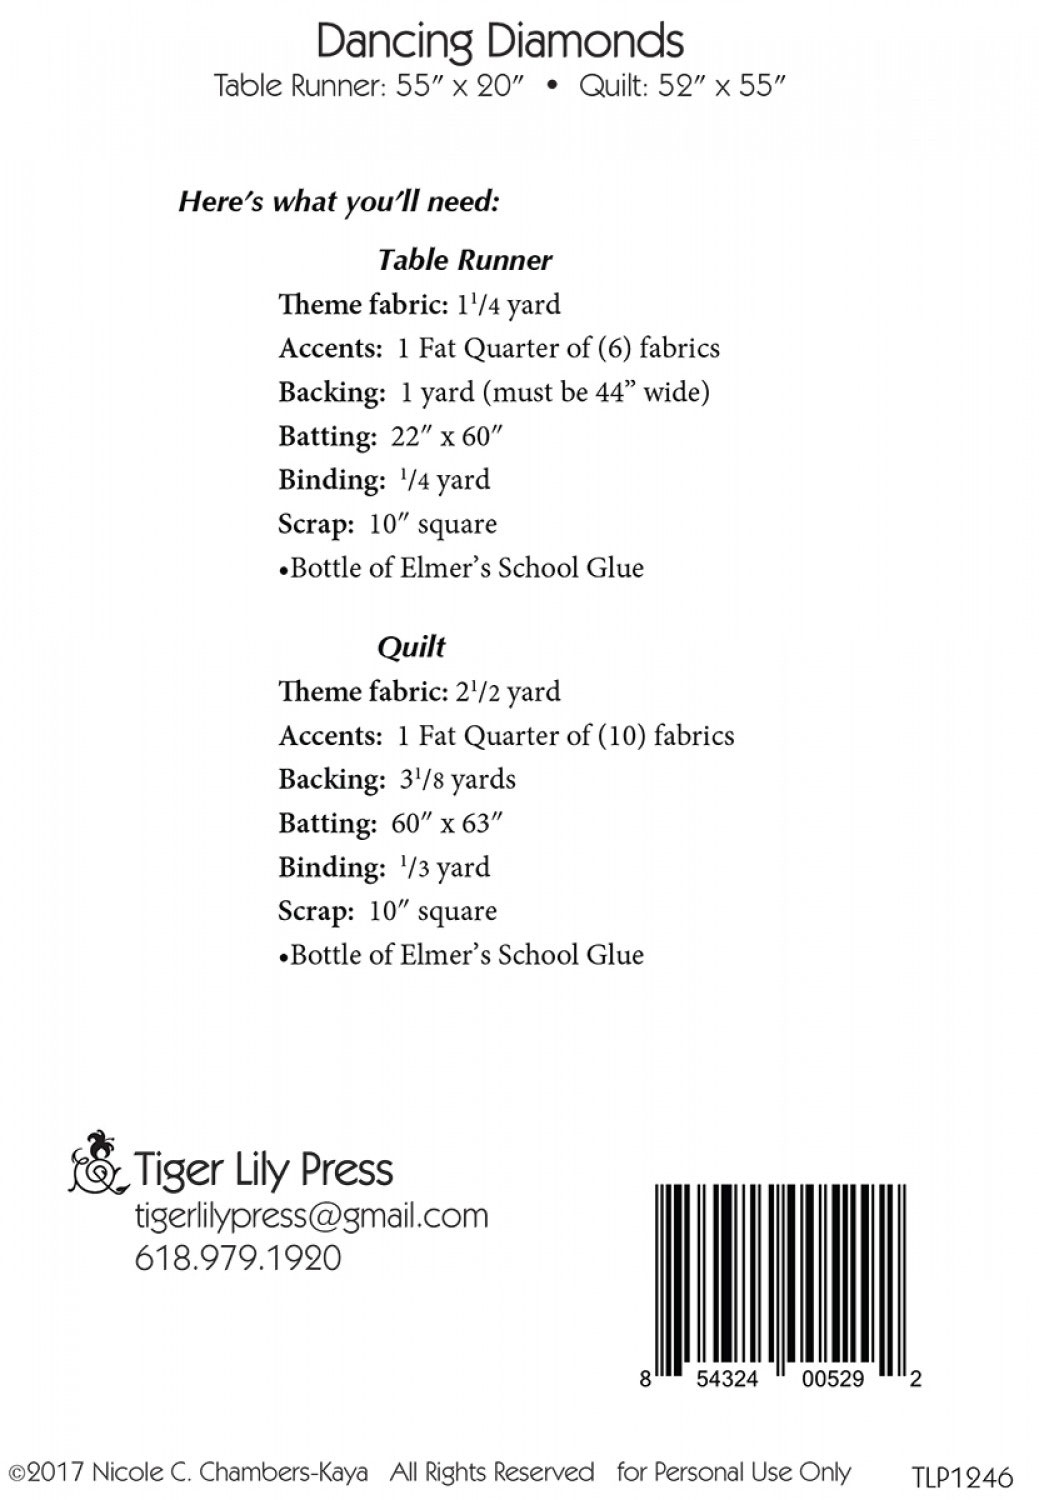 Dancing-Diamonds-Table-Runner-and-Quilt-sewing-pattern-Tiger-Lily-Press-back